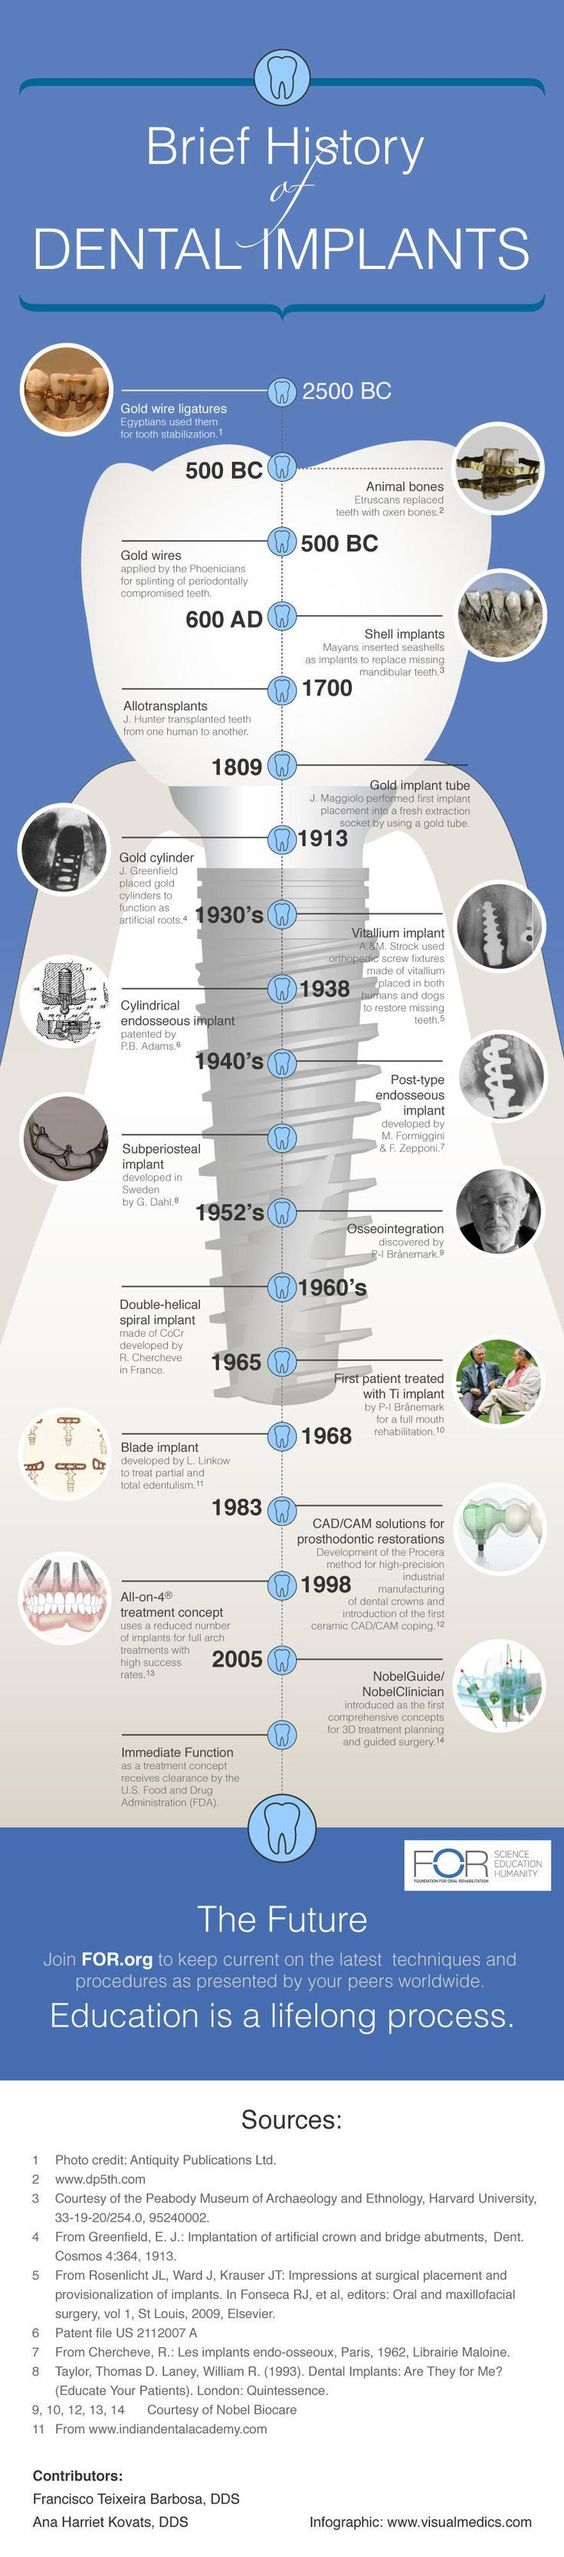 brief history of dental implants